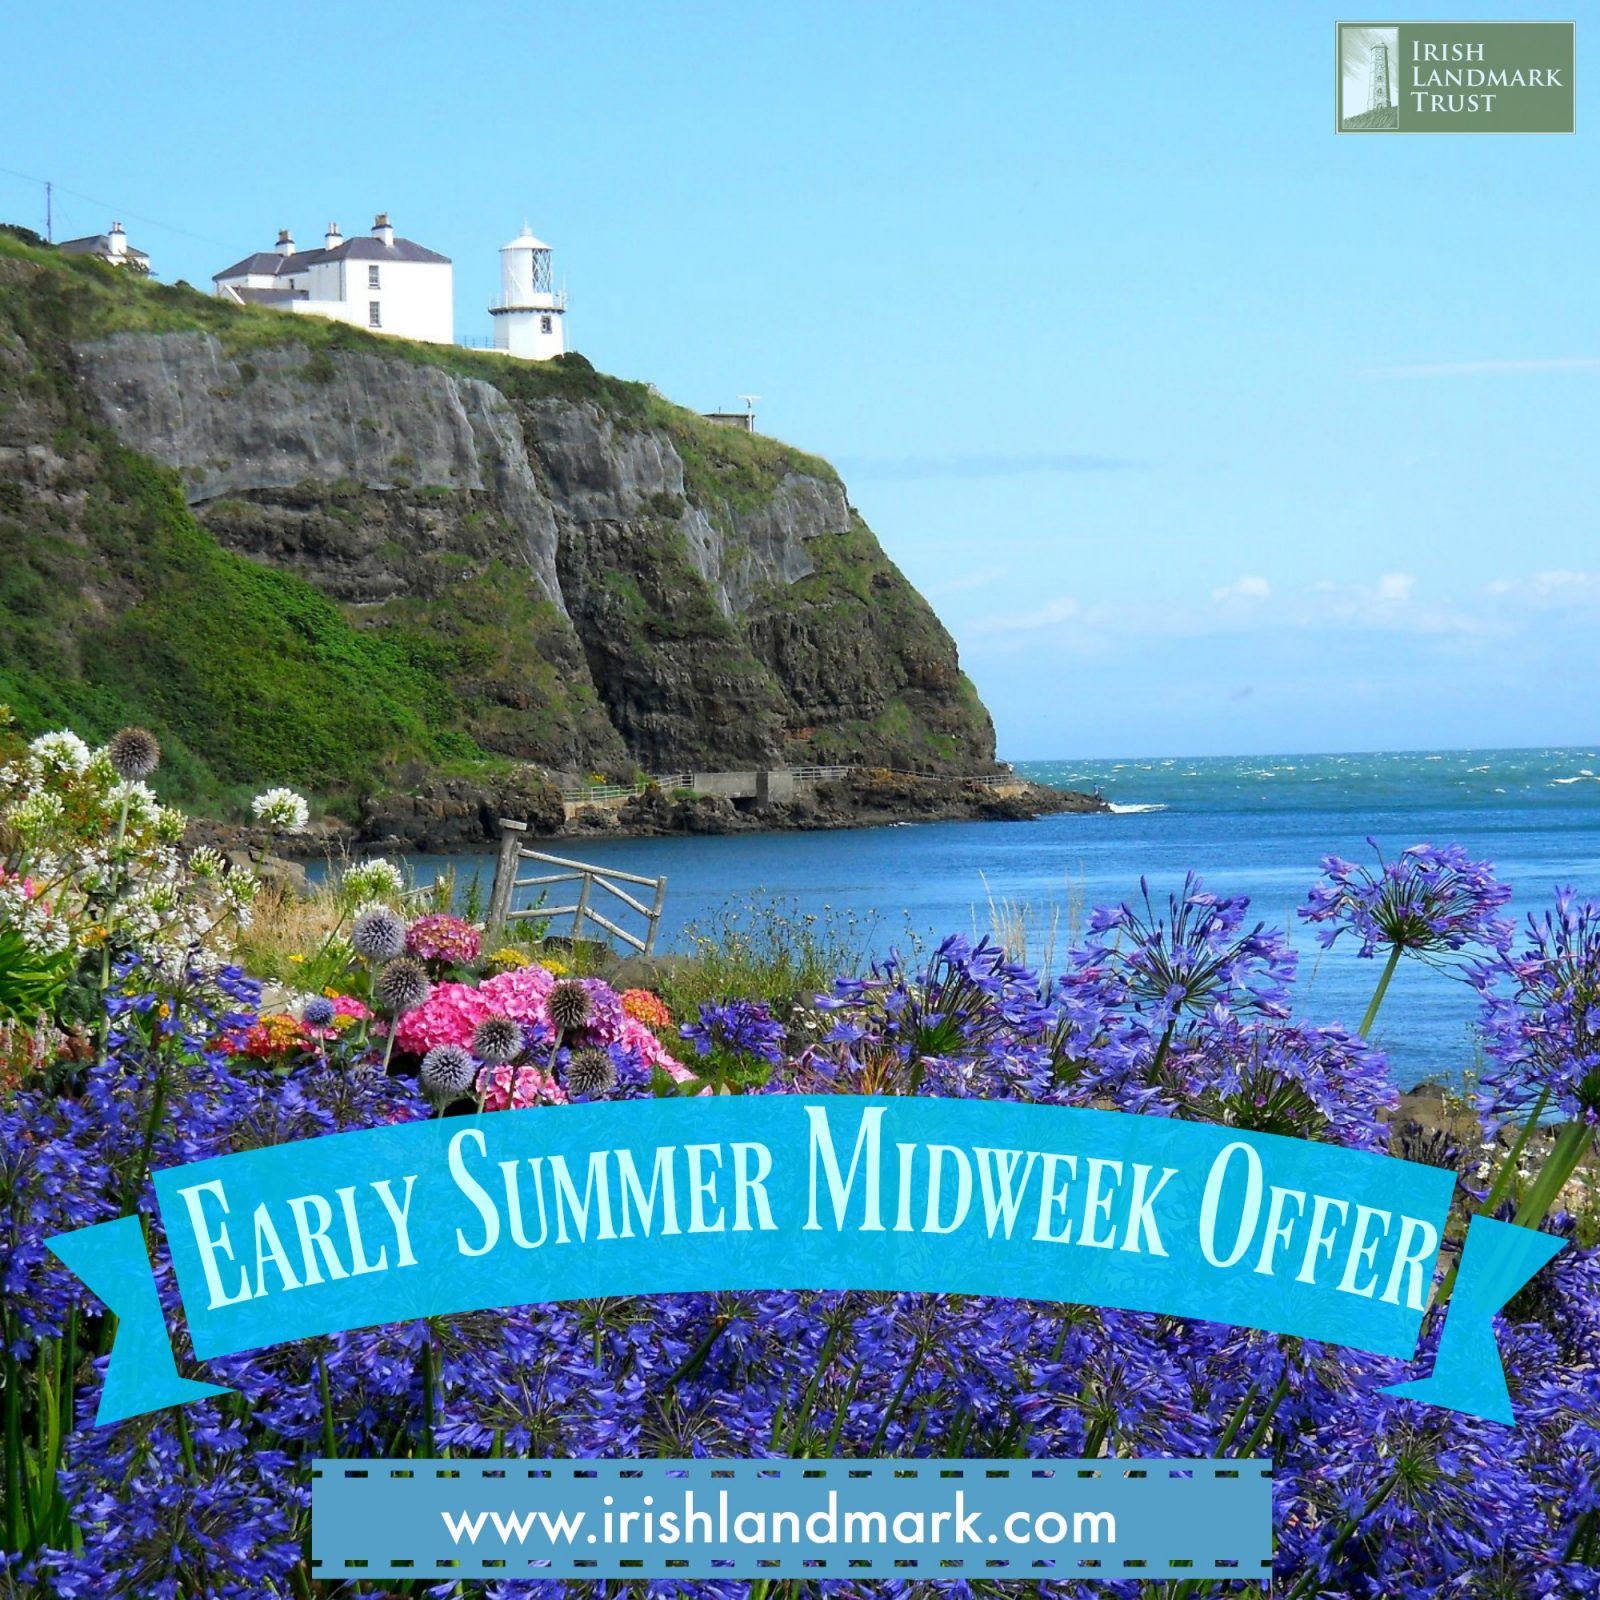 Early Summer – 3 nights for the price of 2